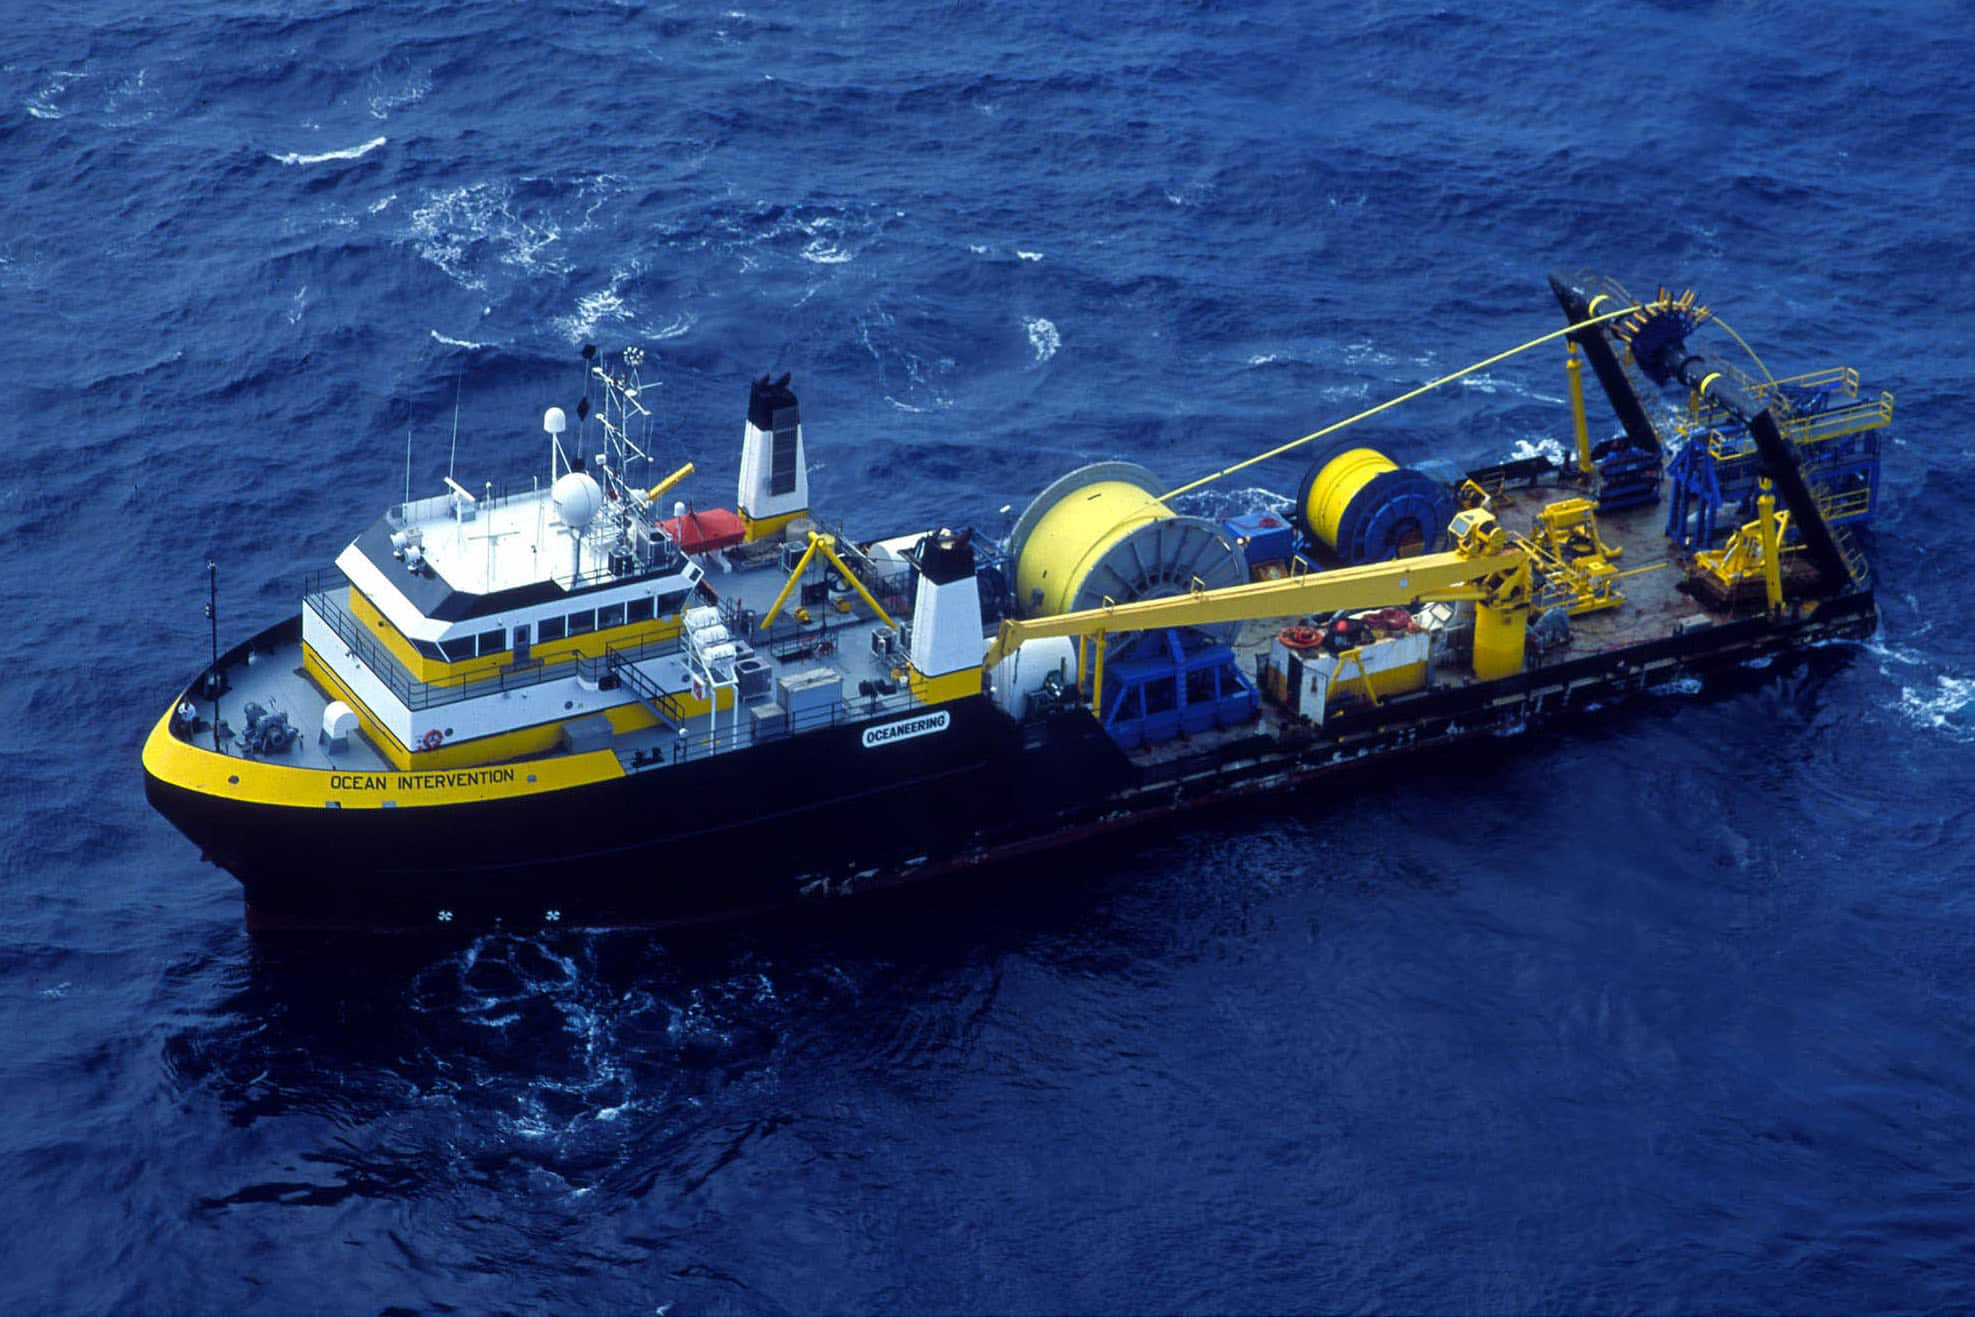 oceaneering, ocean intervention, ROV and diving, vessel, installation, intervention, IMR